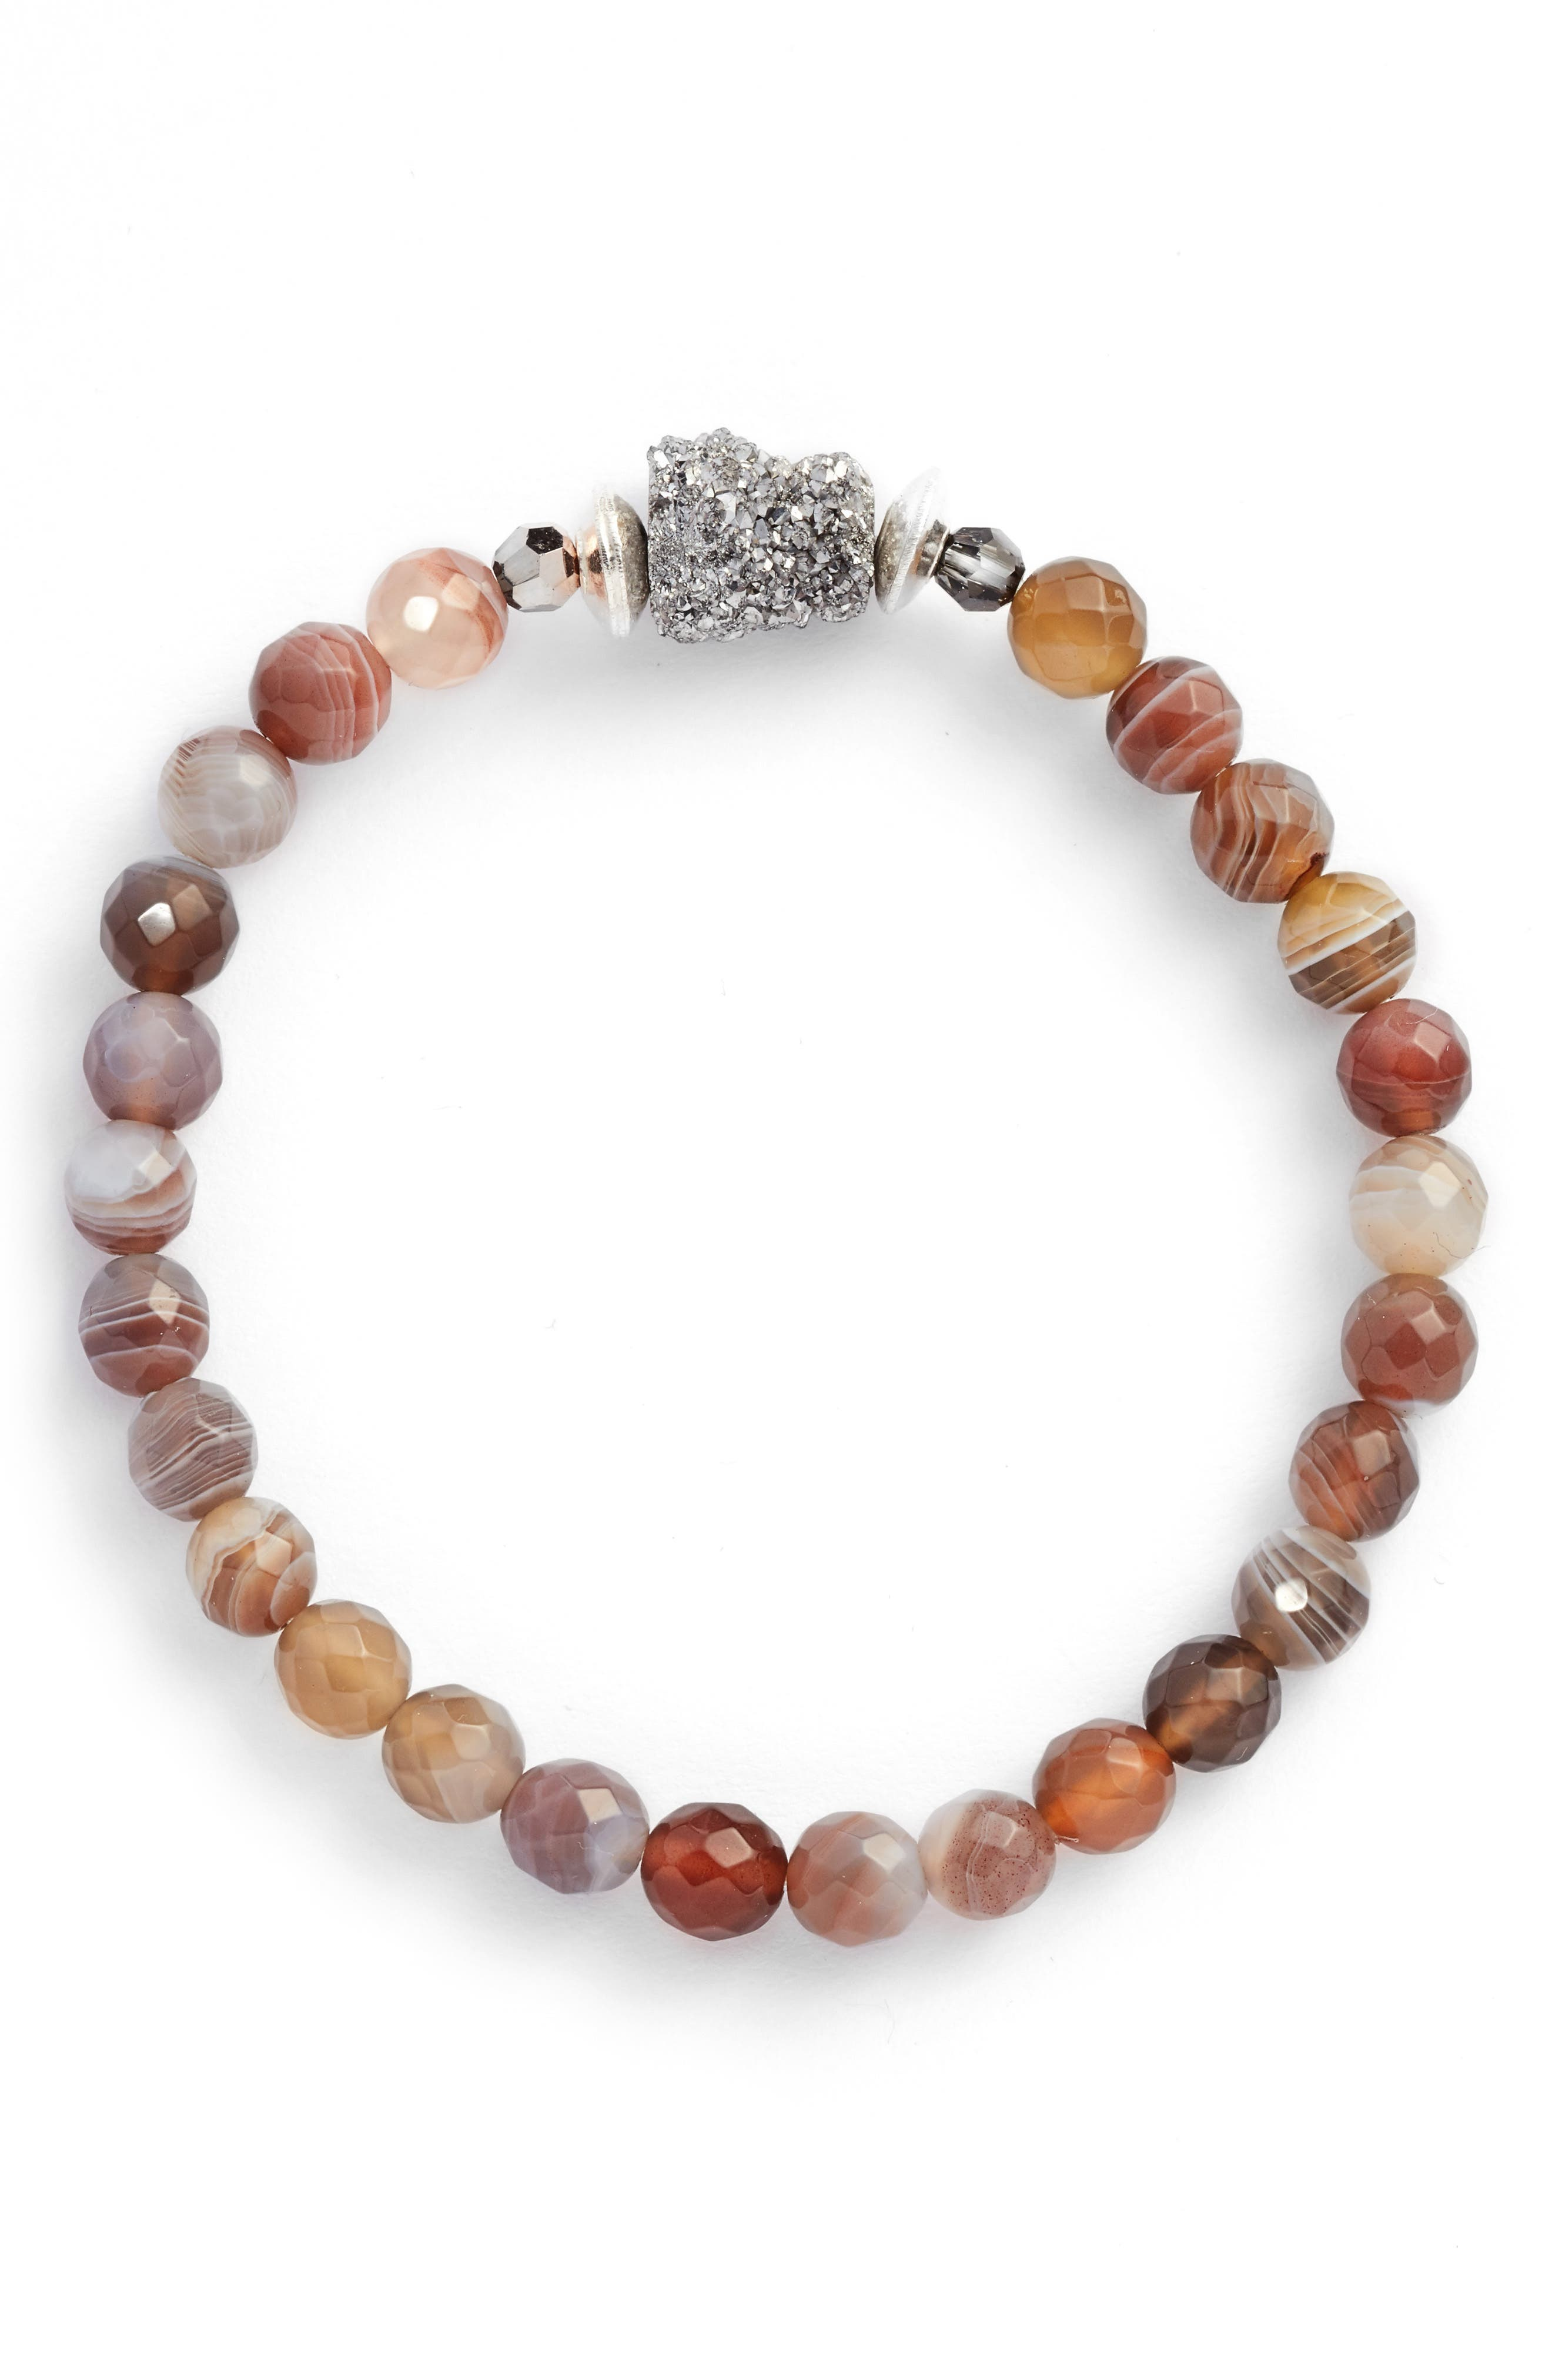 Agate Stretch Bracelet,                             Main thumbnail 1, color,                             Botswana Agate Mix